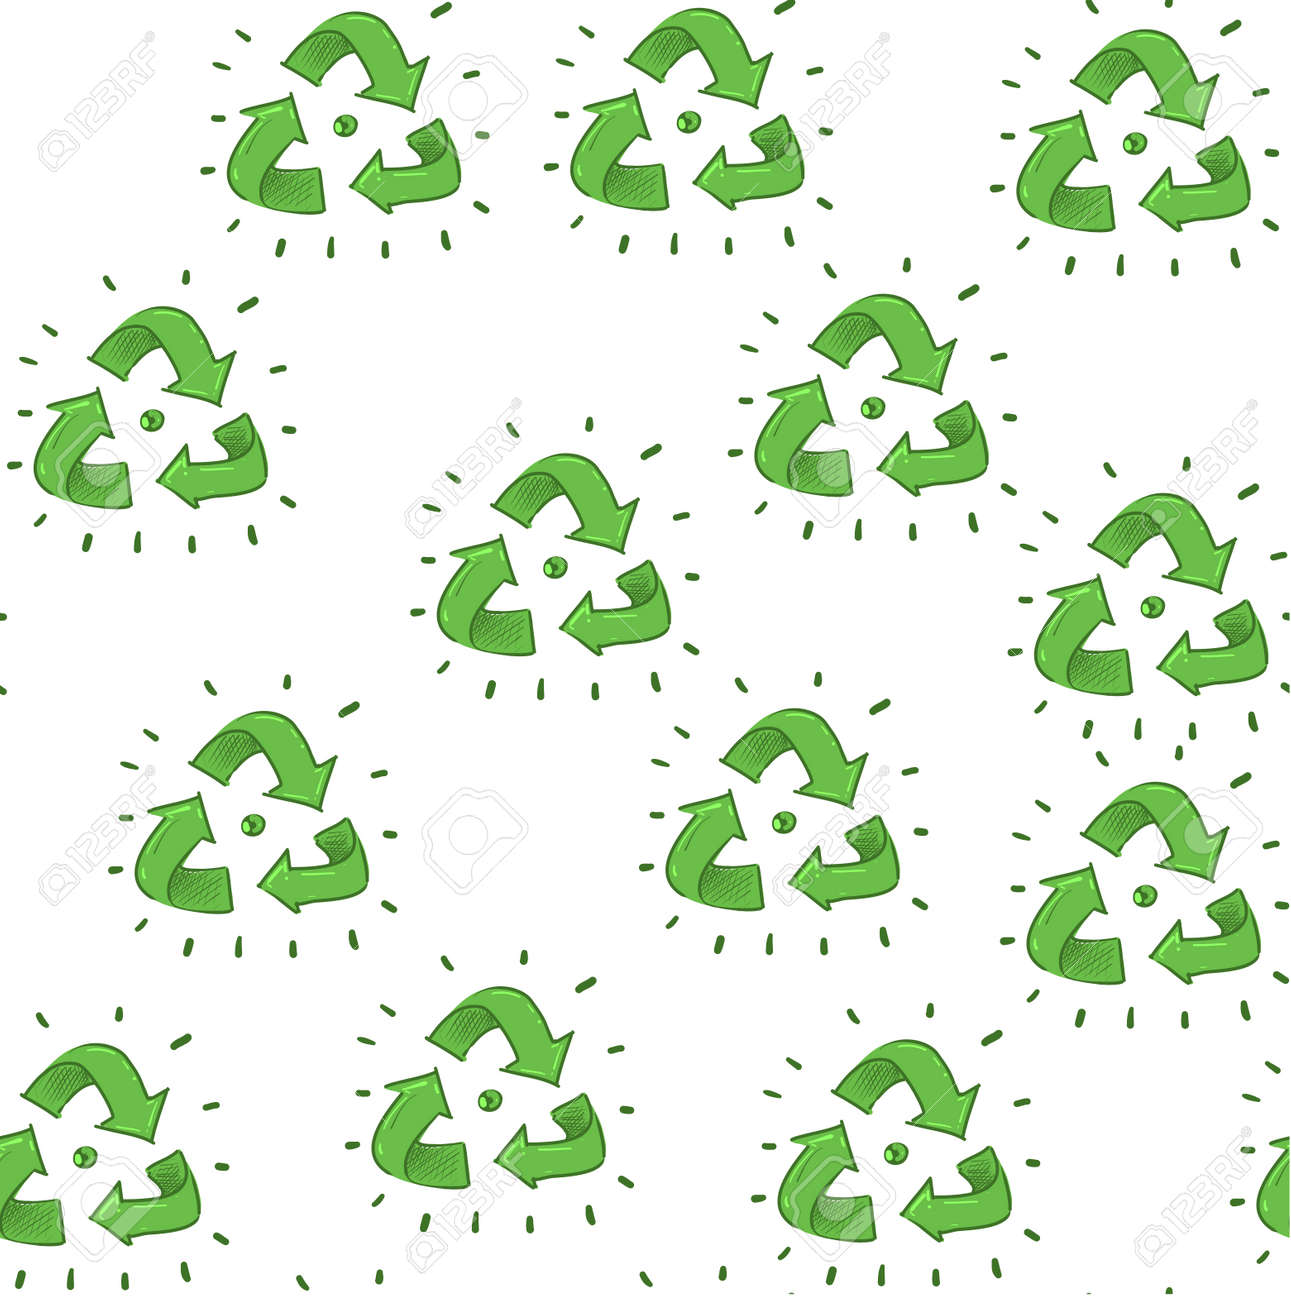 Ecology three arrow symbol seamless pattern with resycling vector clipart on off white background for wrapping. - 164110837